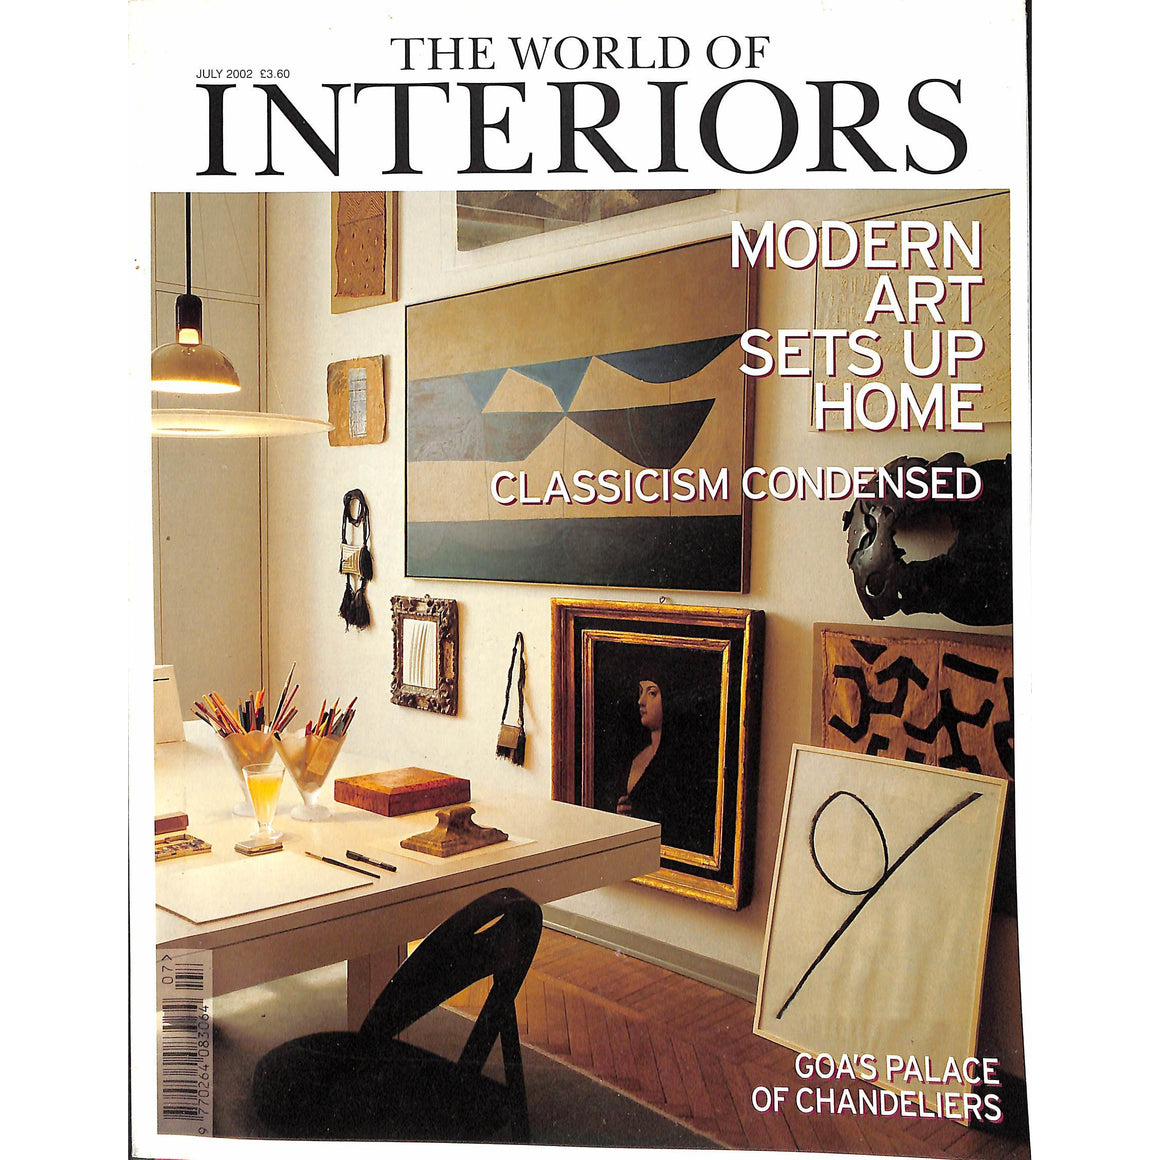 'The World of Interiors July 2002'